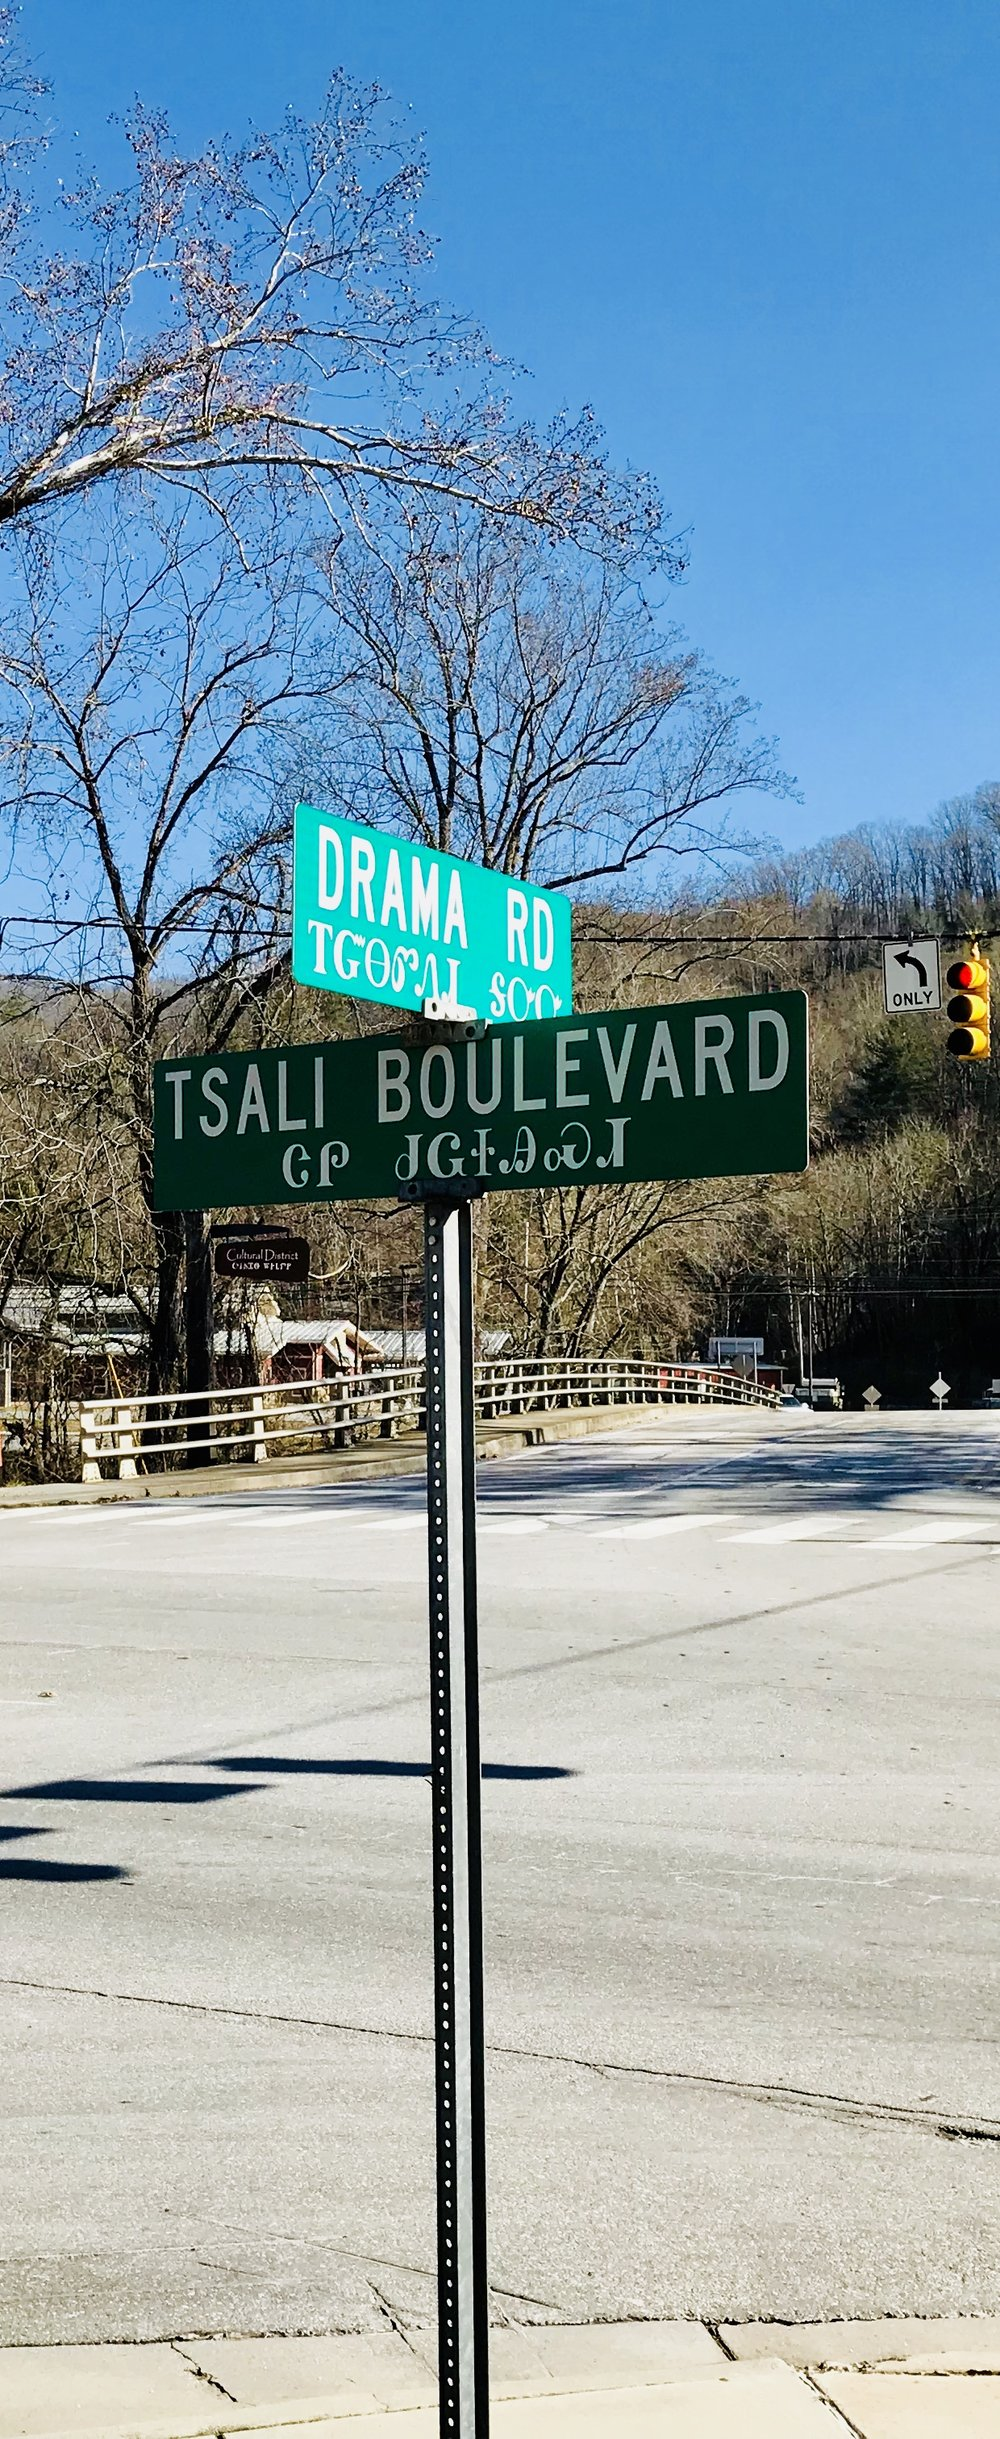 I thought it was so cool that all the road signs had Cherokee translations.